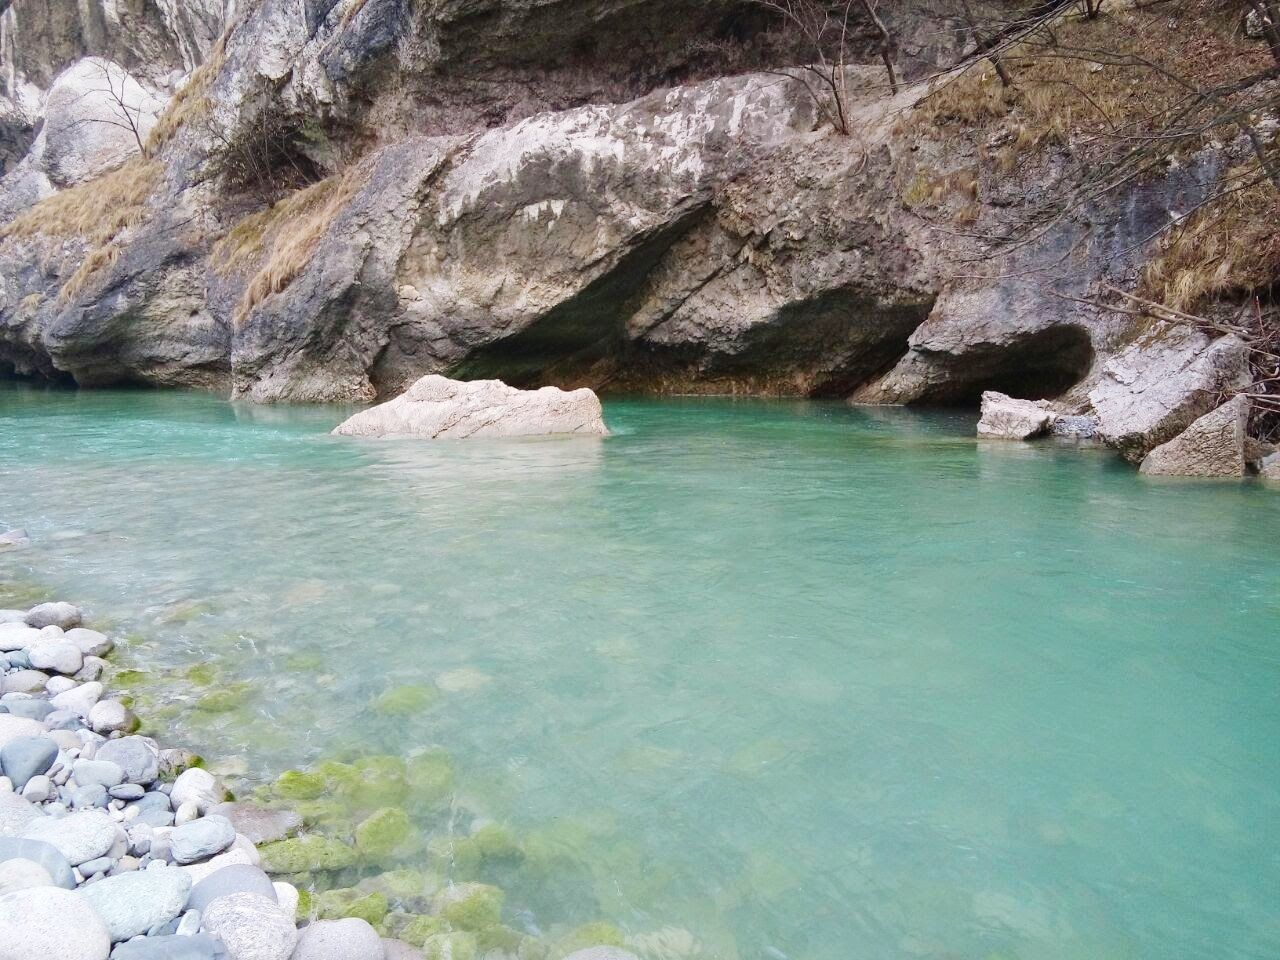 rock, water, solid, rock - object, sea, beauty in nature, rock formation, scenics - nature, day, tranquility, nature, no people, land, tranquil scene, physical geography, outdoors, geology, waterfront, idyllic, turquoise colored, eroded